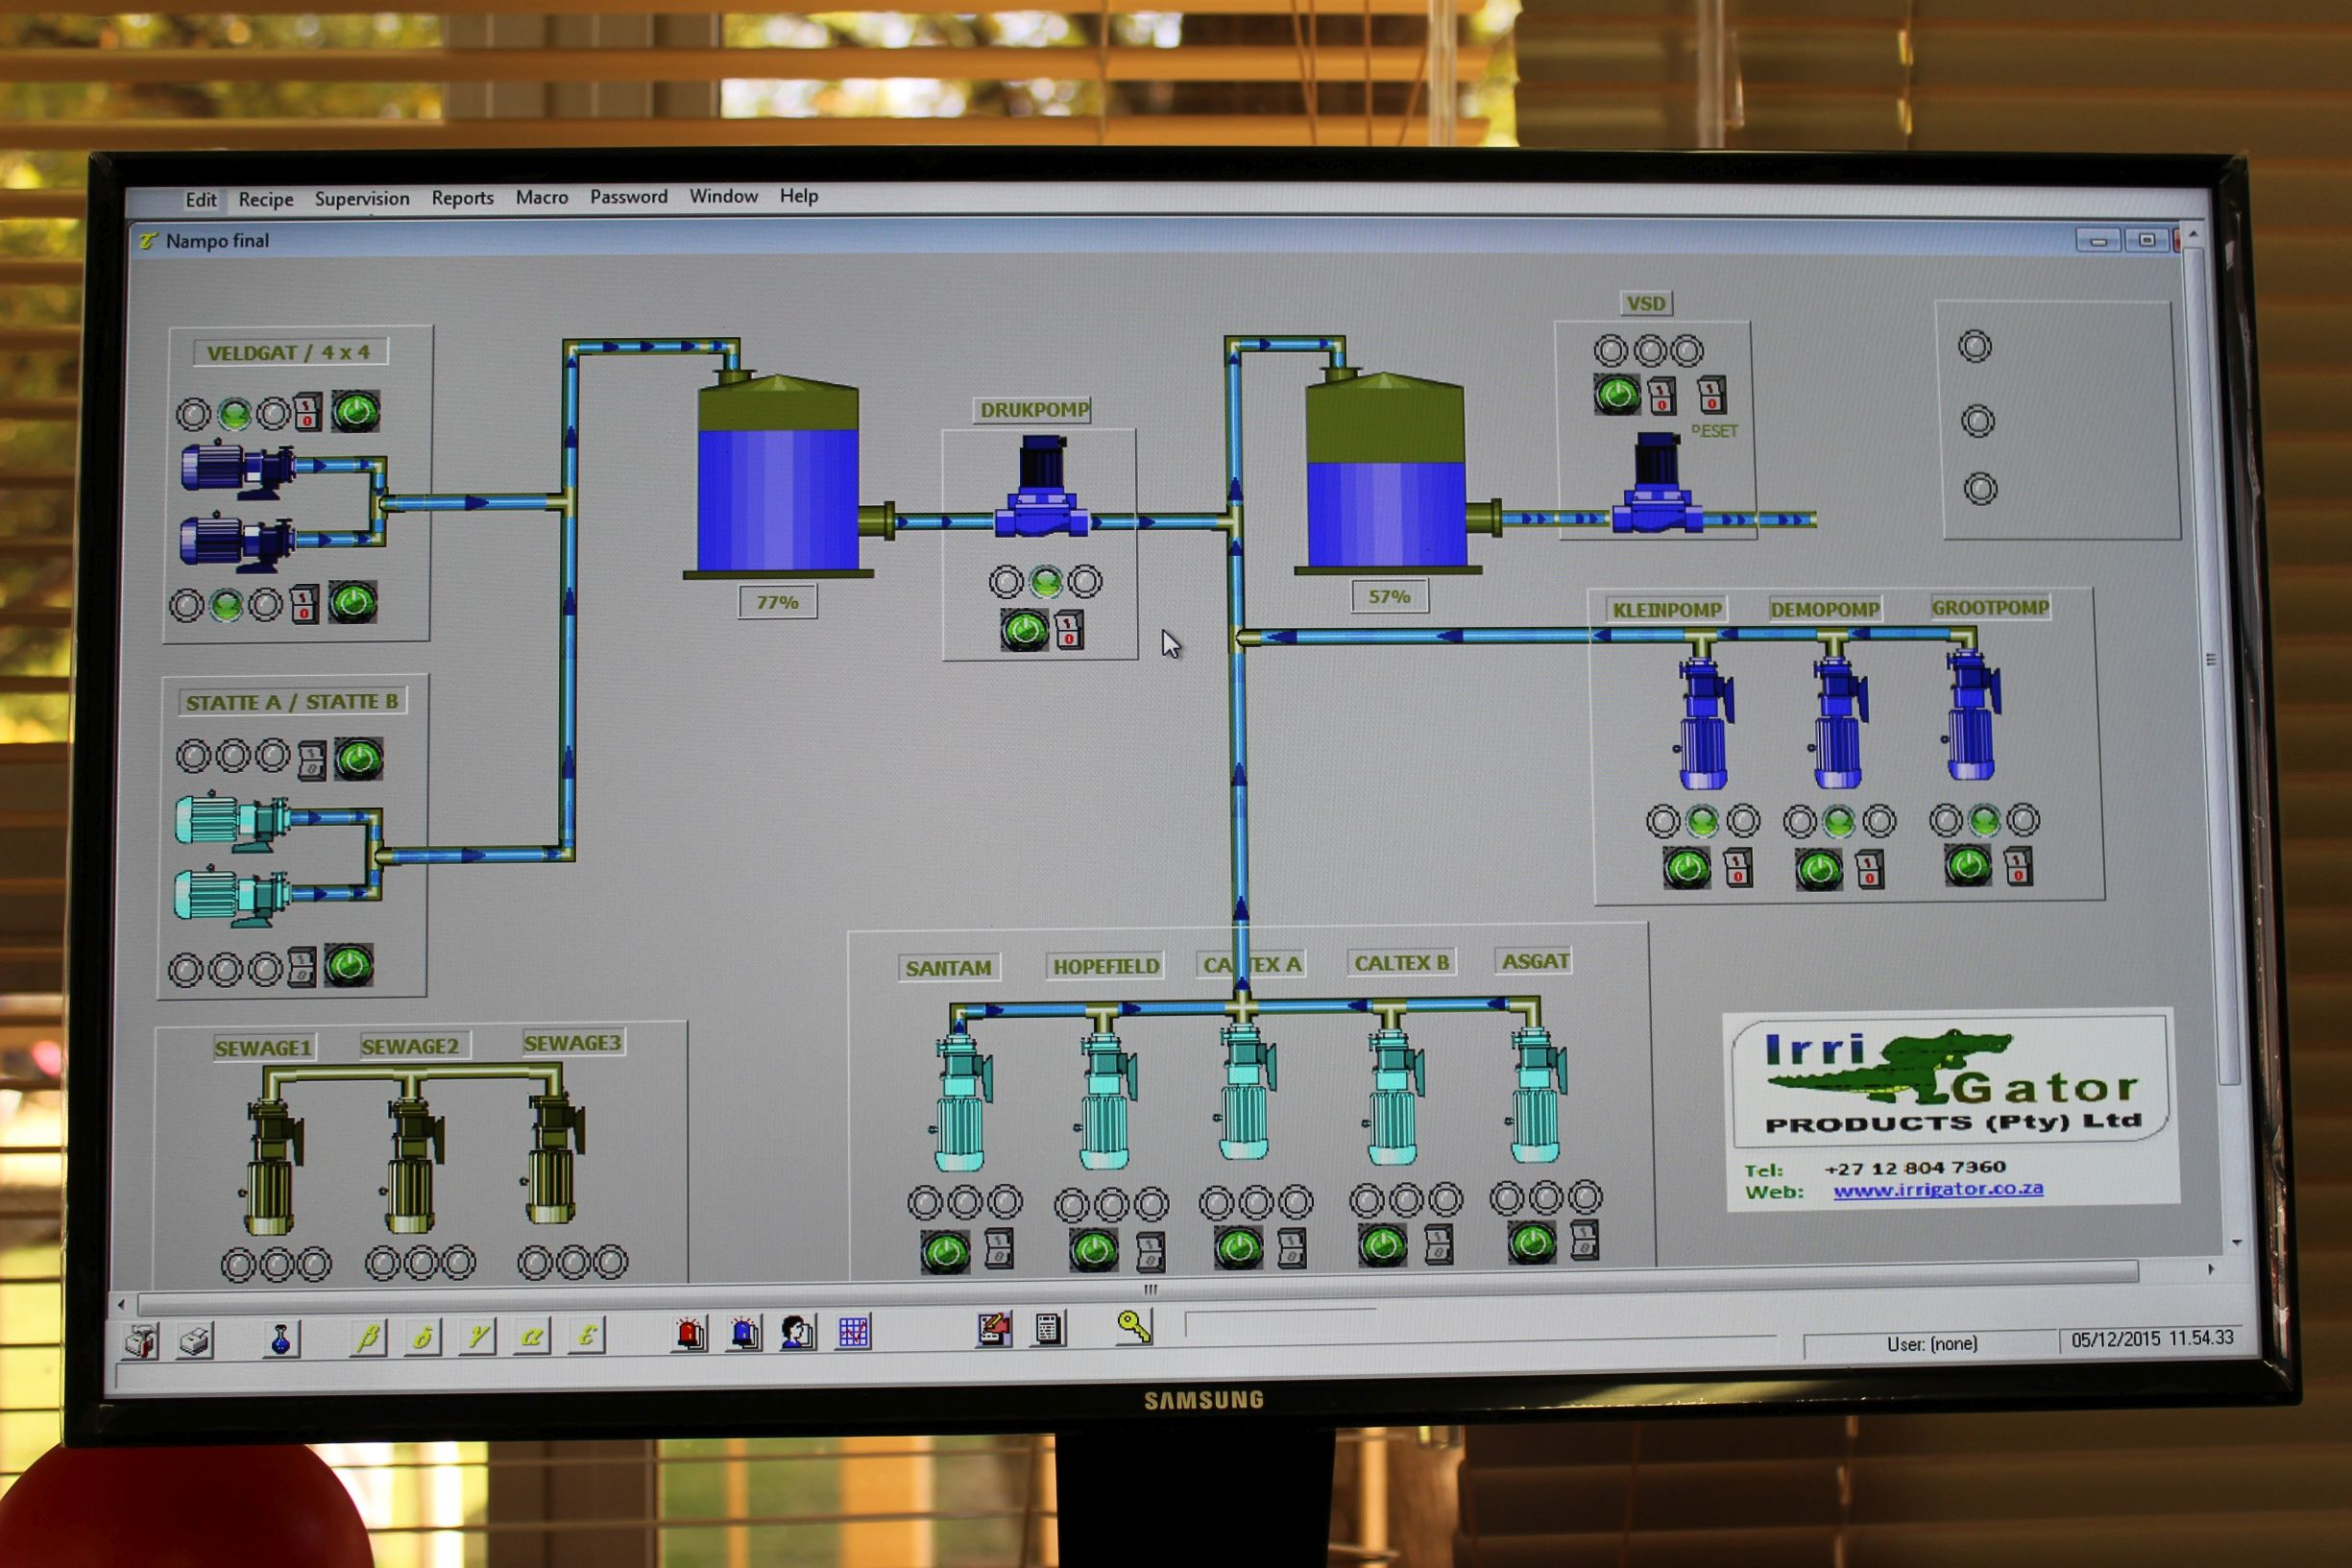 Flexible control options using a PLC. – Irri-Gator South Africa